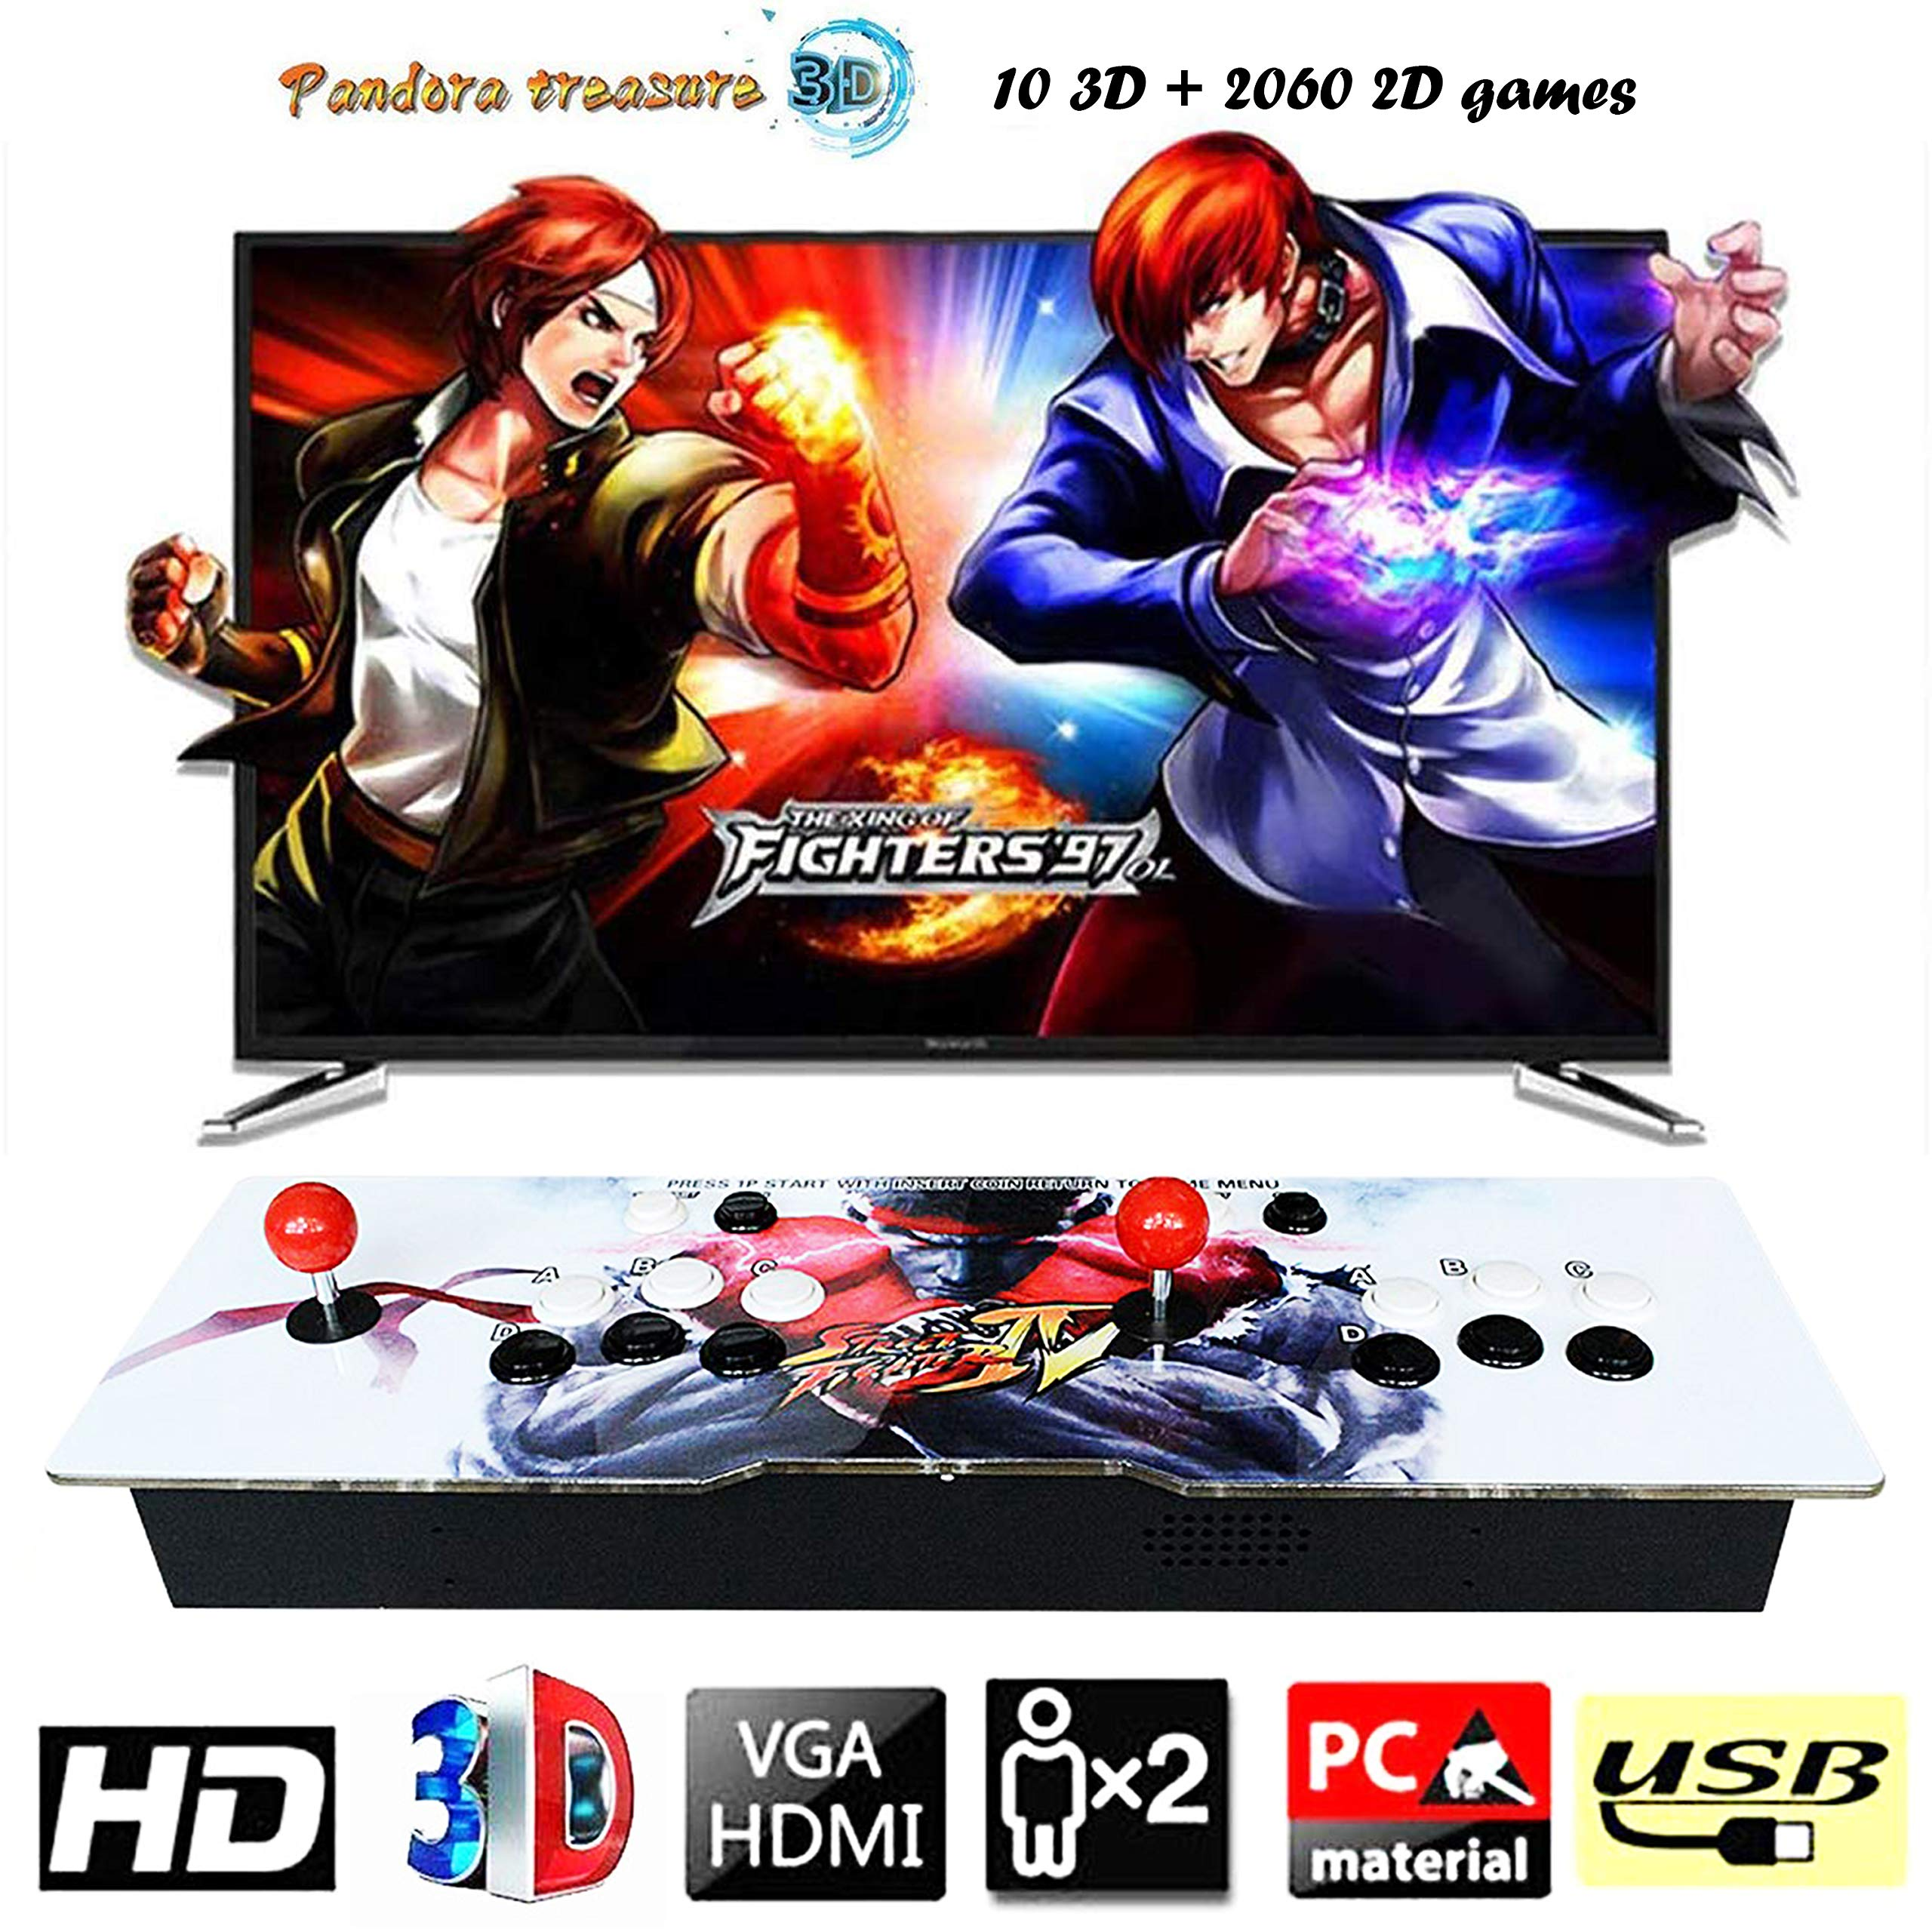 888Warehouse New! Pandora's Box 9S Arcade Console 1080P with 2070 Games in 1, Retro Video Games Double Stick Arcade Console, Supports HDMI and VGA Output for TV and PC by 888Warehouse (Image #1)